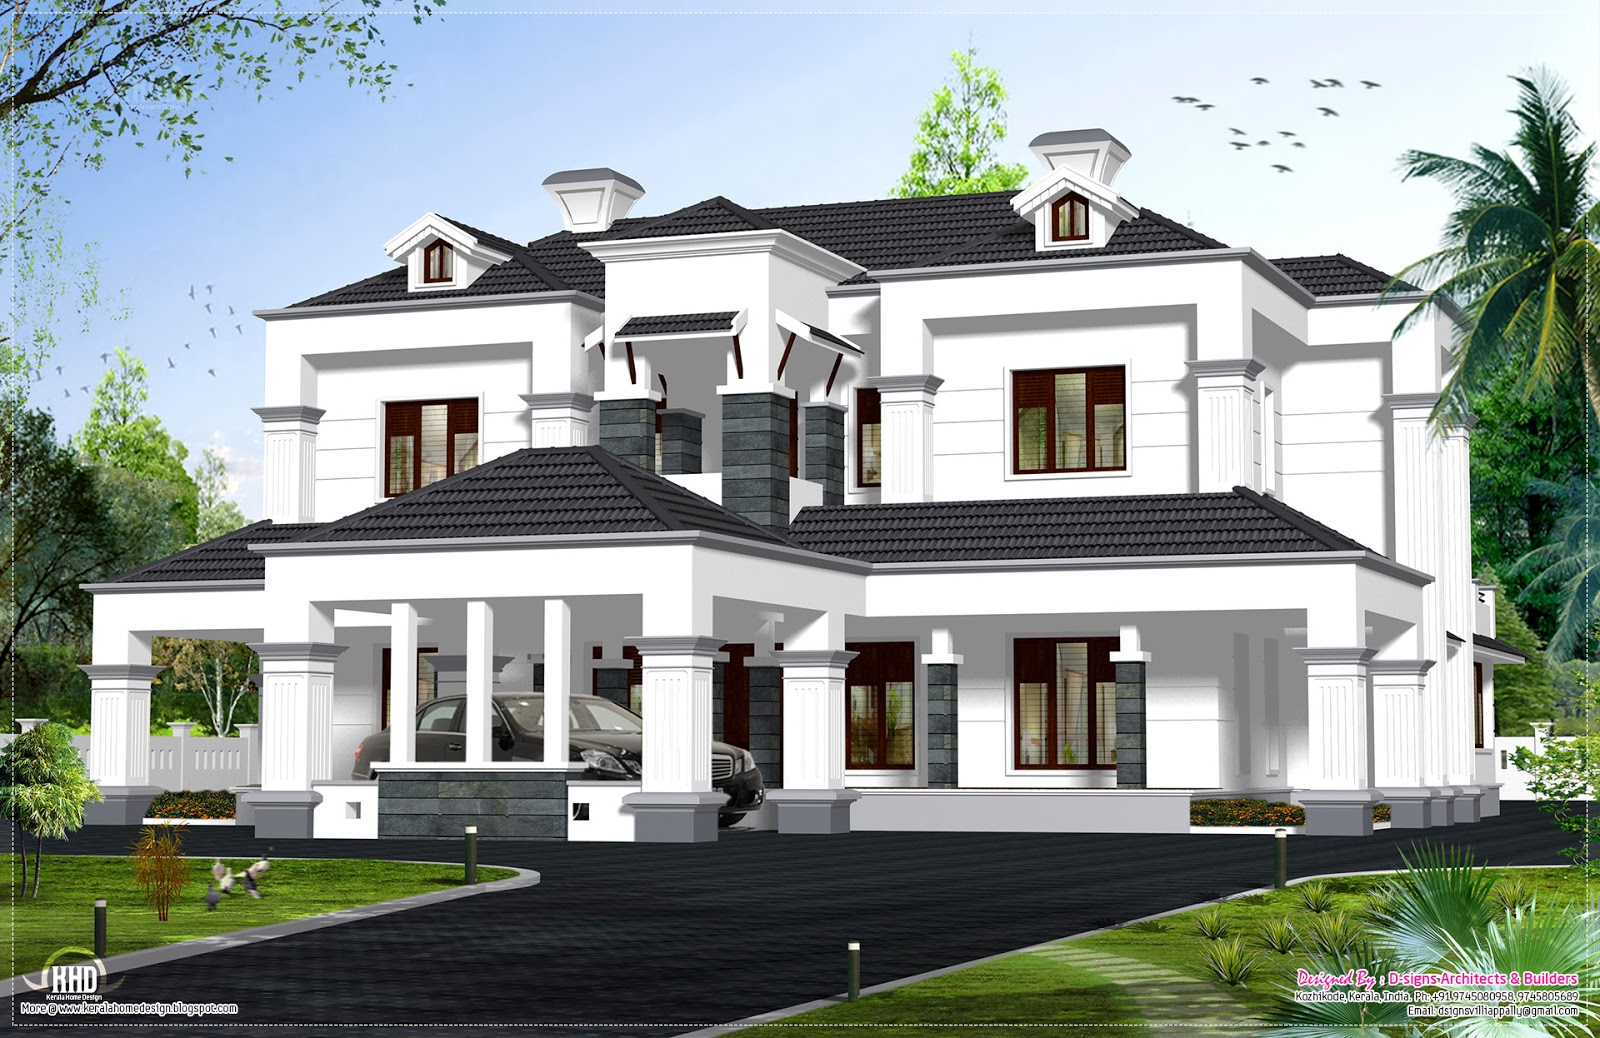 Victorian model house exterior kerala home design and for Villa plans in kerala